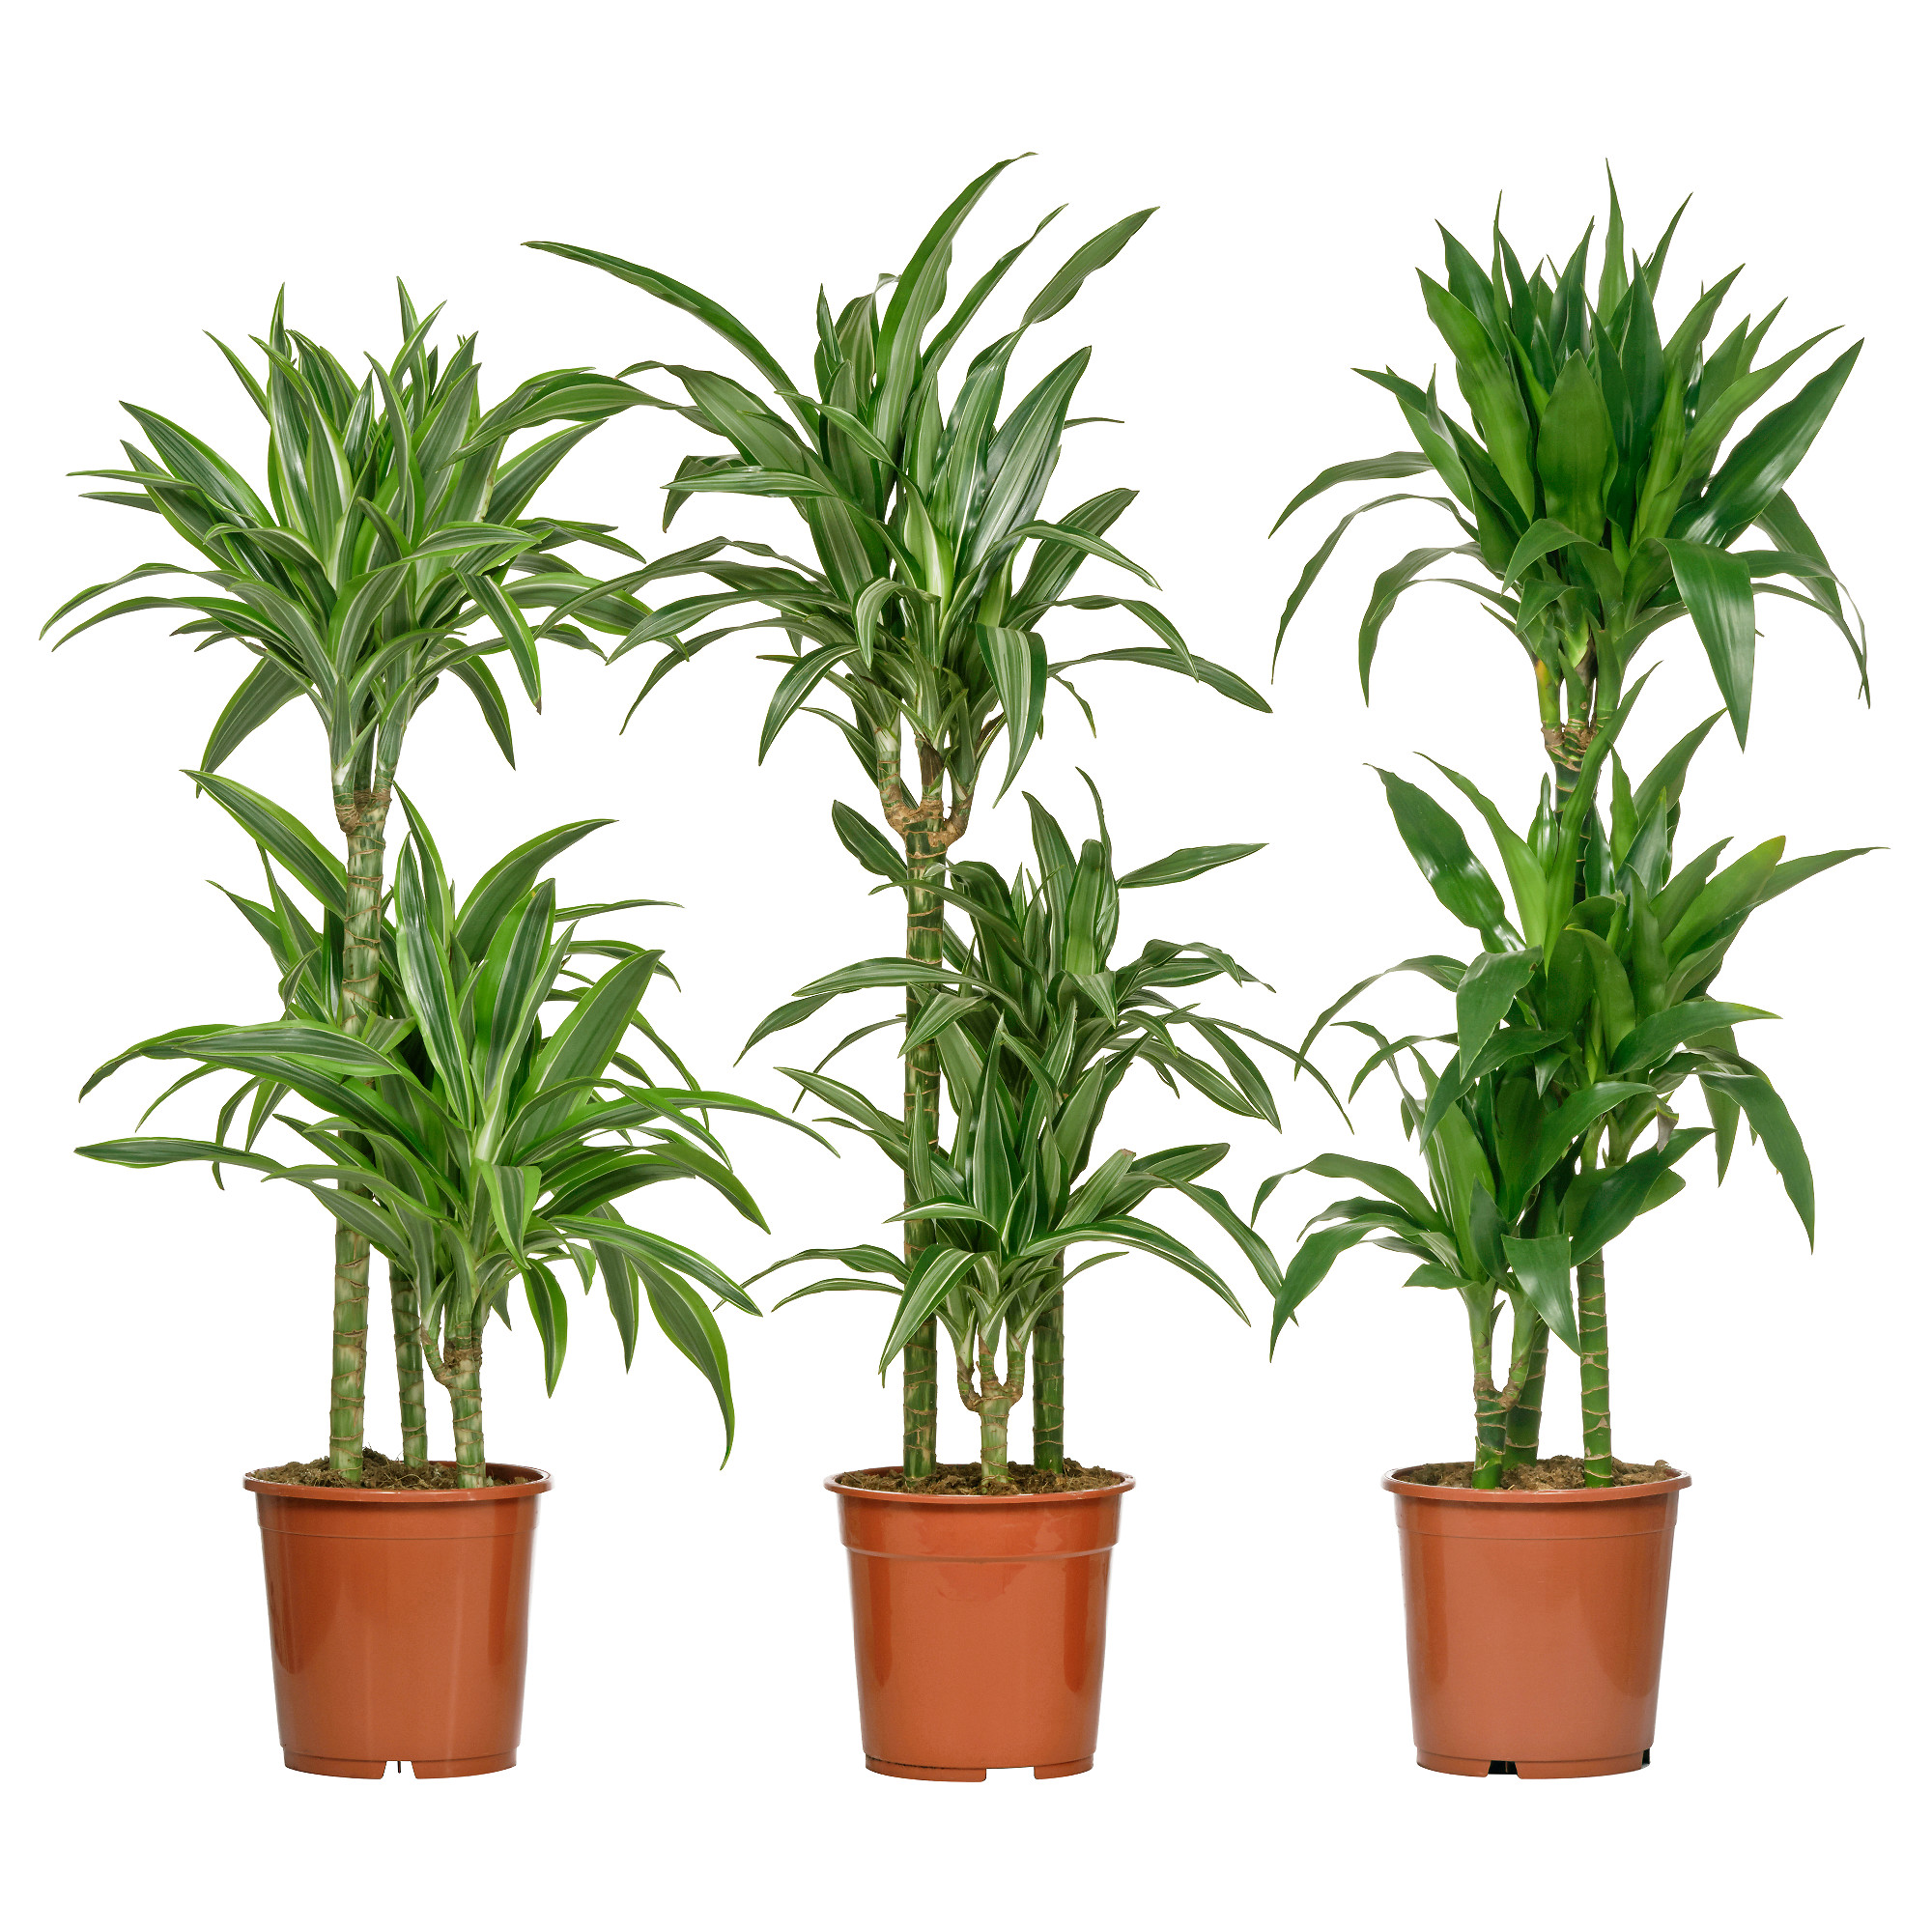 Plantes vertes ikea fashion designs for Plantes vertes